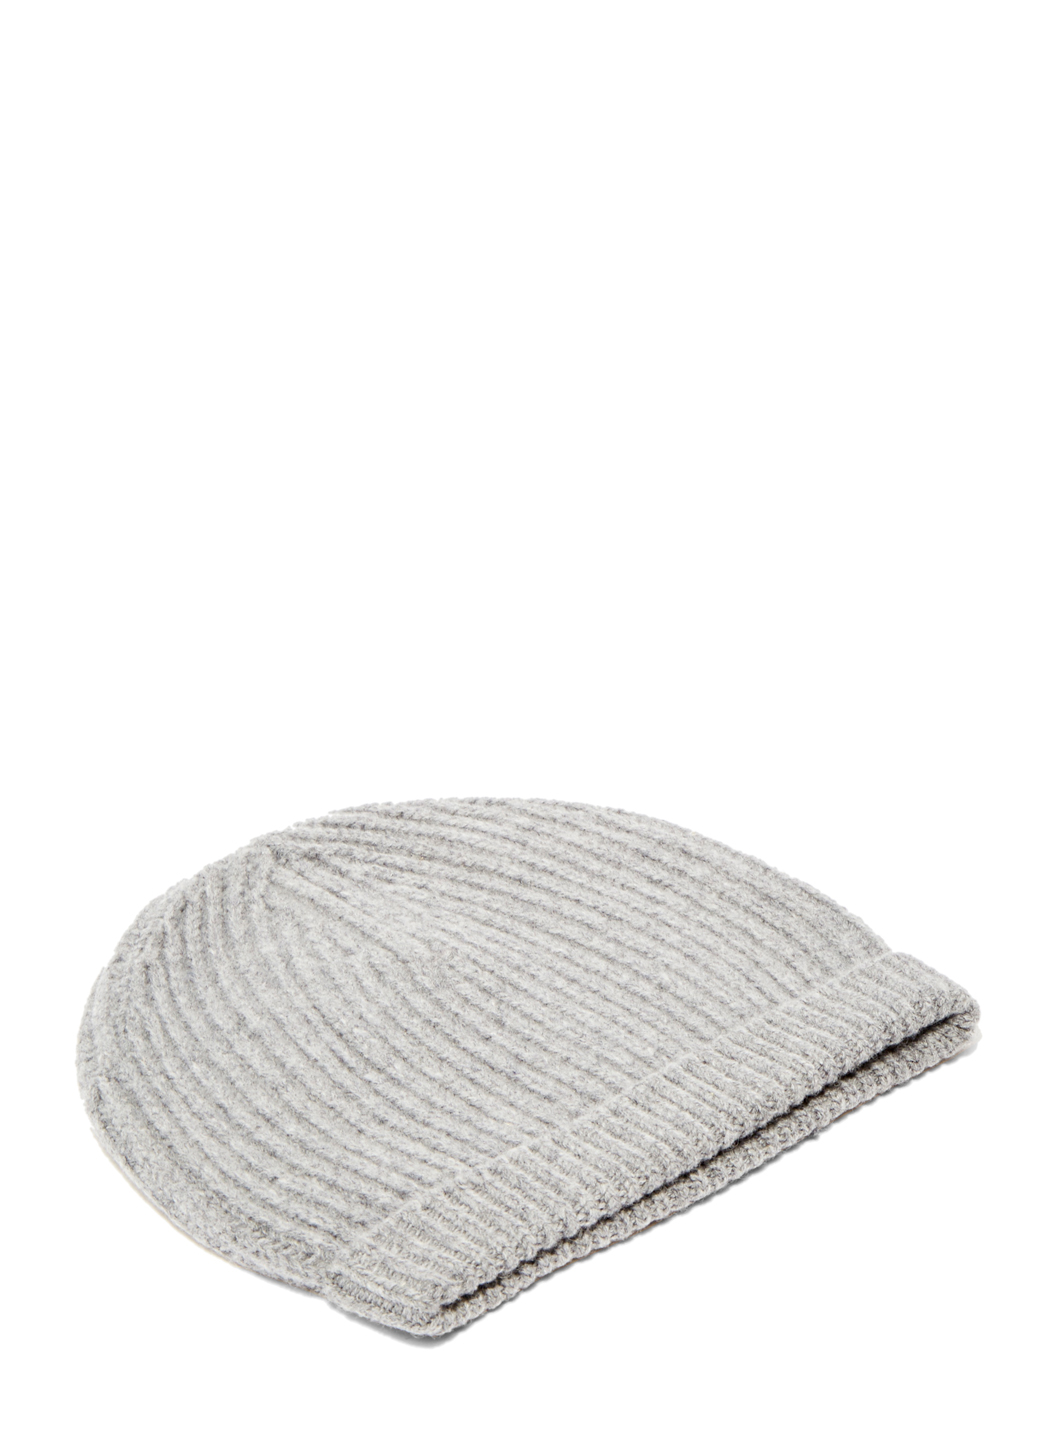 Acne Studios Canning L Rib Hat in Gray - Lyst f7d9160a5bf9